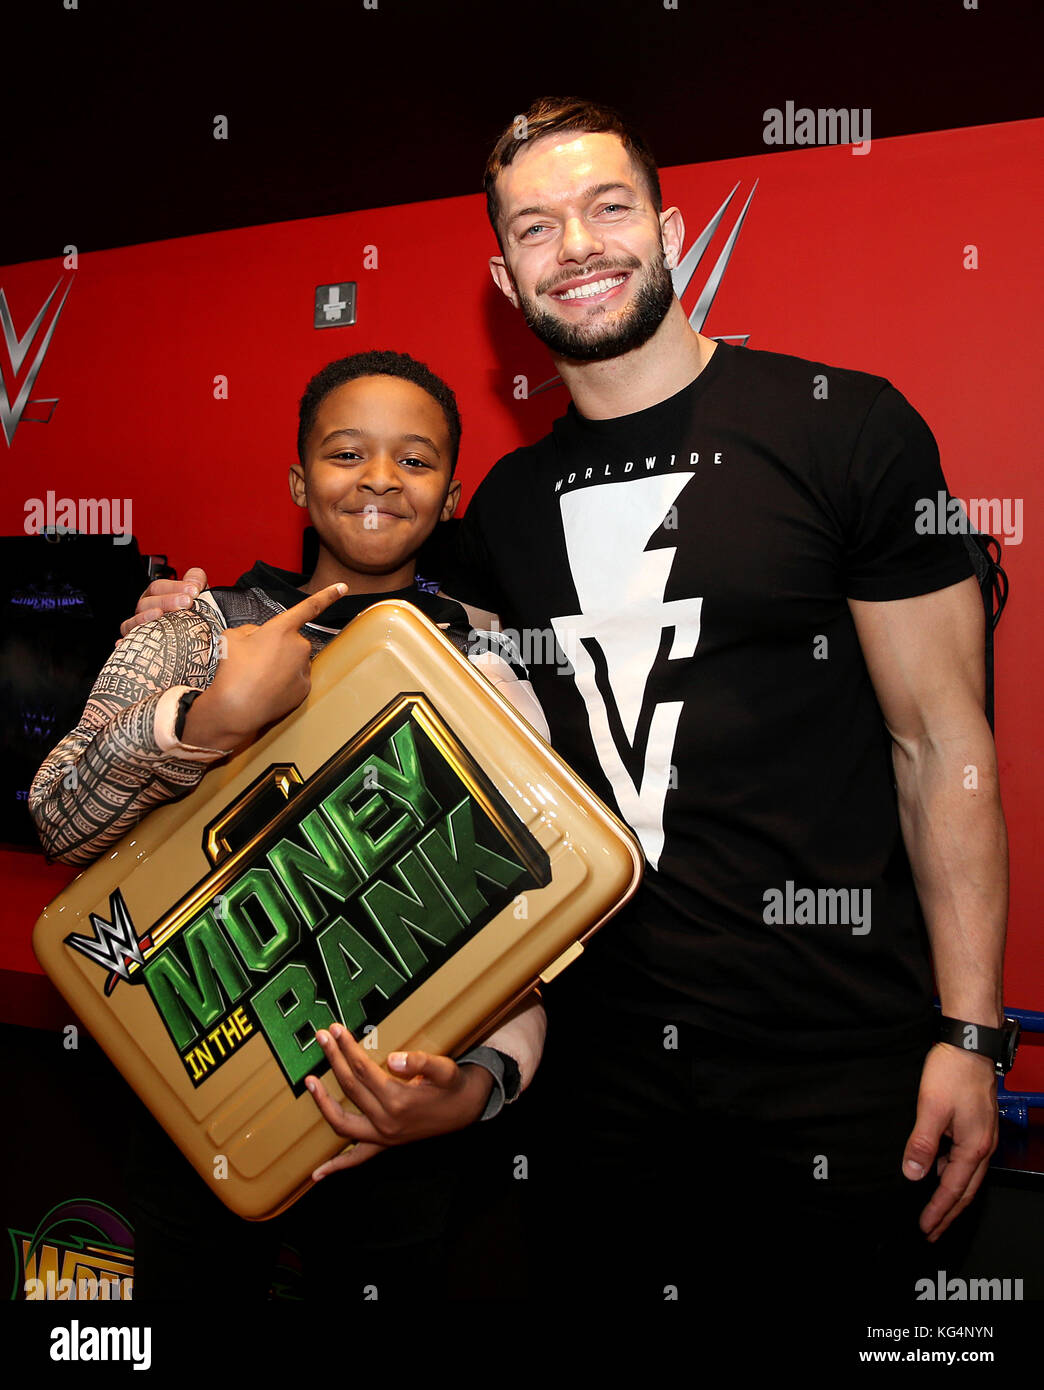 Wwe superstars stock photos wwe superstars stock images alamy wwe superstars finn balor and sasha banks meet children from higham ferrers junior school school to m4hsunfo